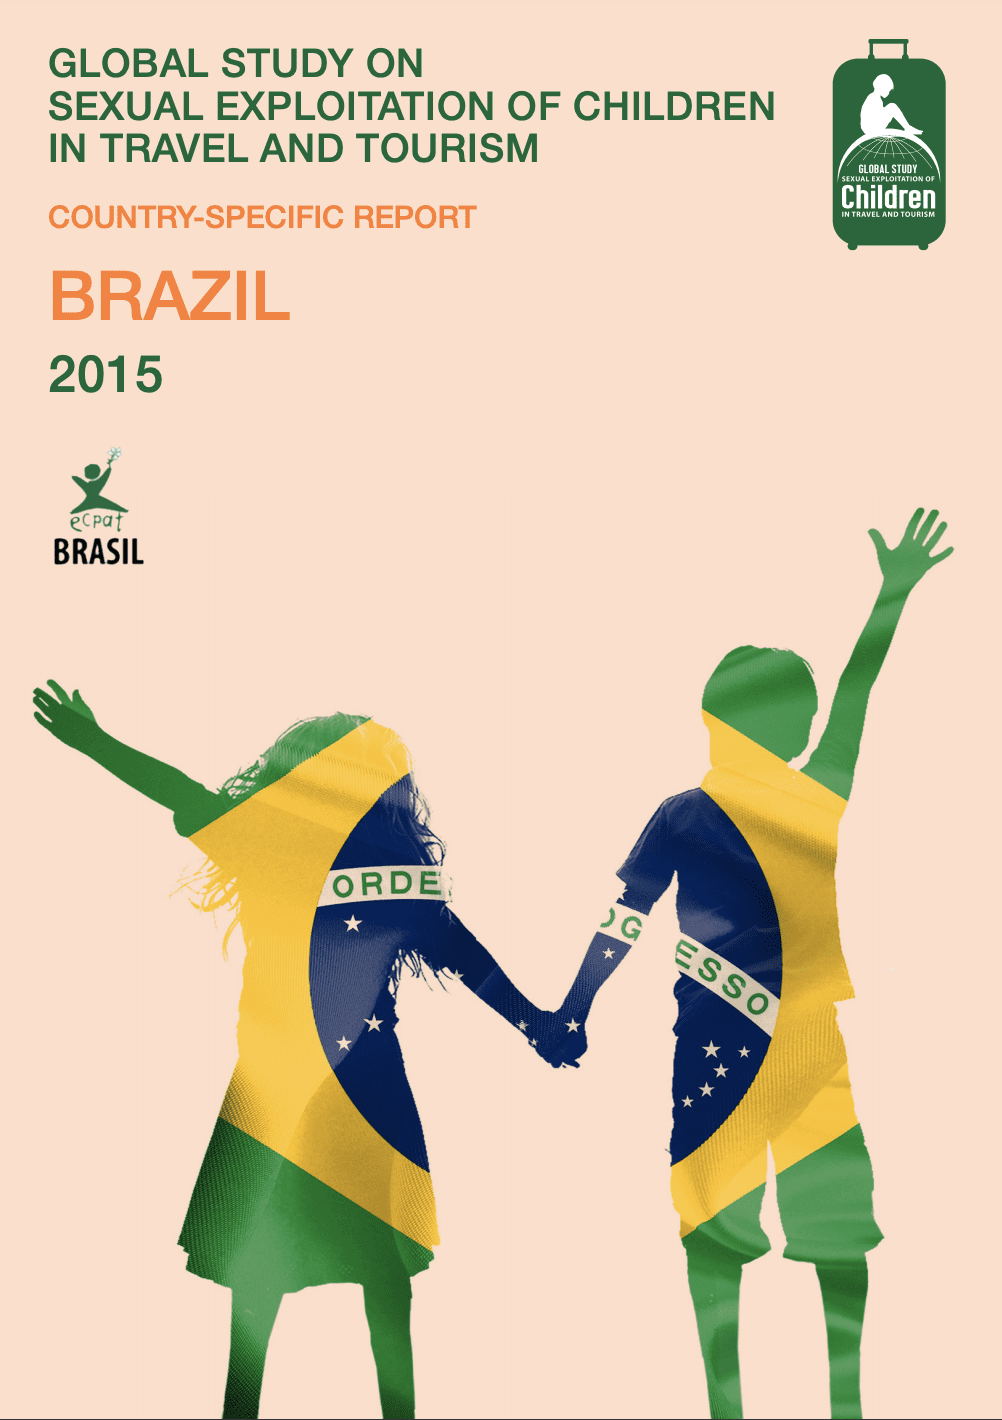 Global Study on Sexual Exploitation of Children in Travel and Tourism – Brazil